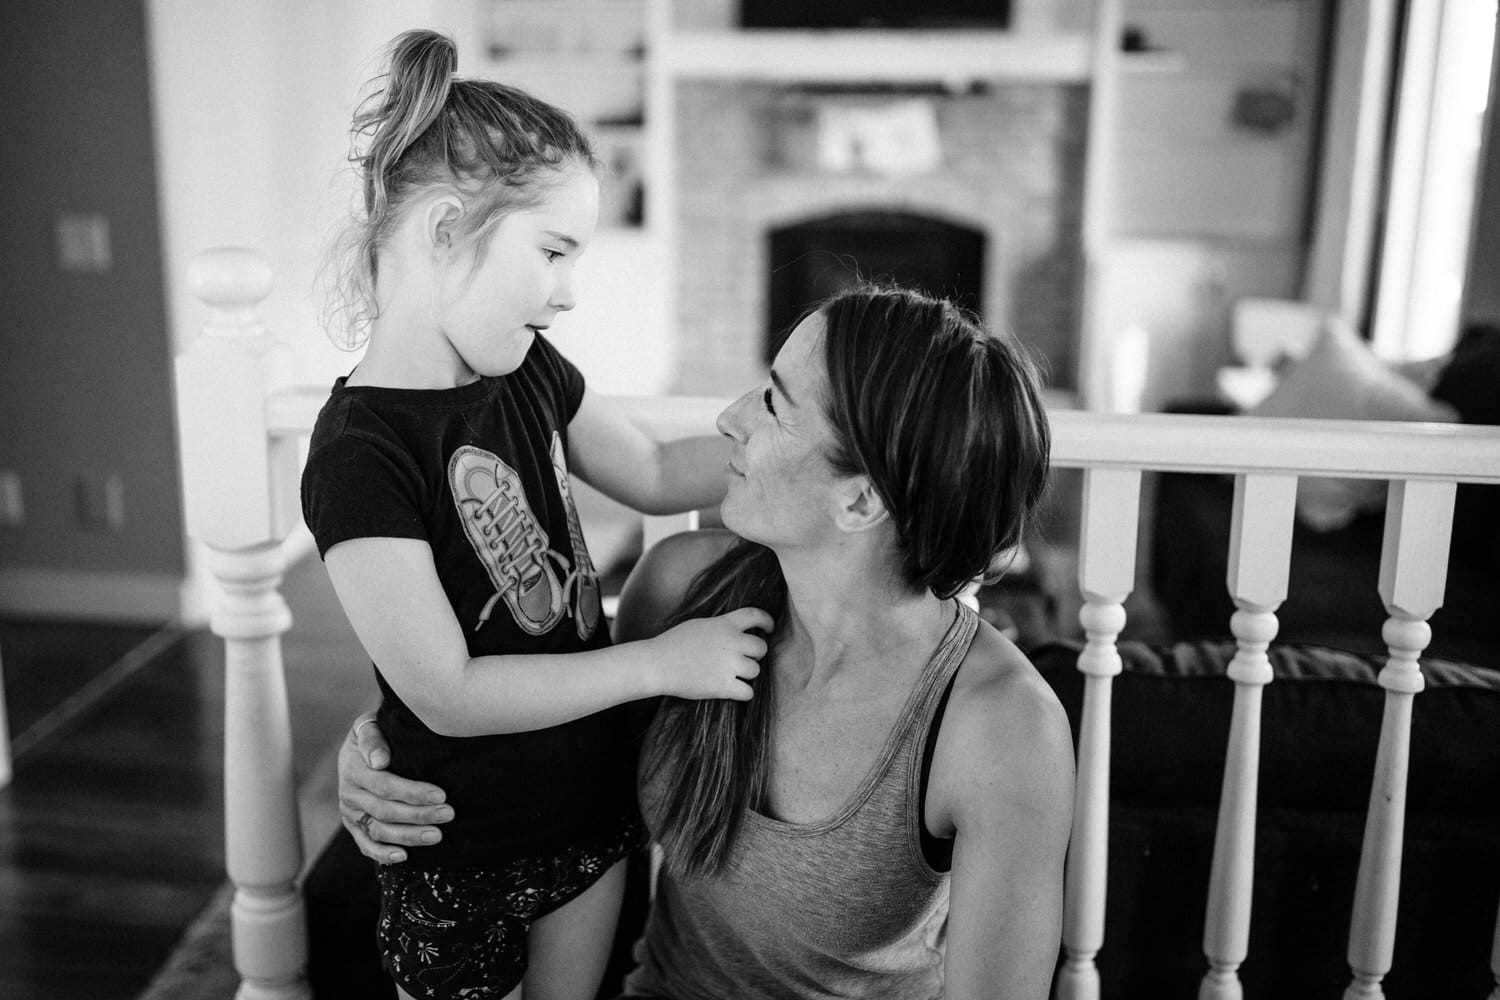 Mom and young daughter photographed together during a Calgary photography shoot at the clients home